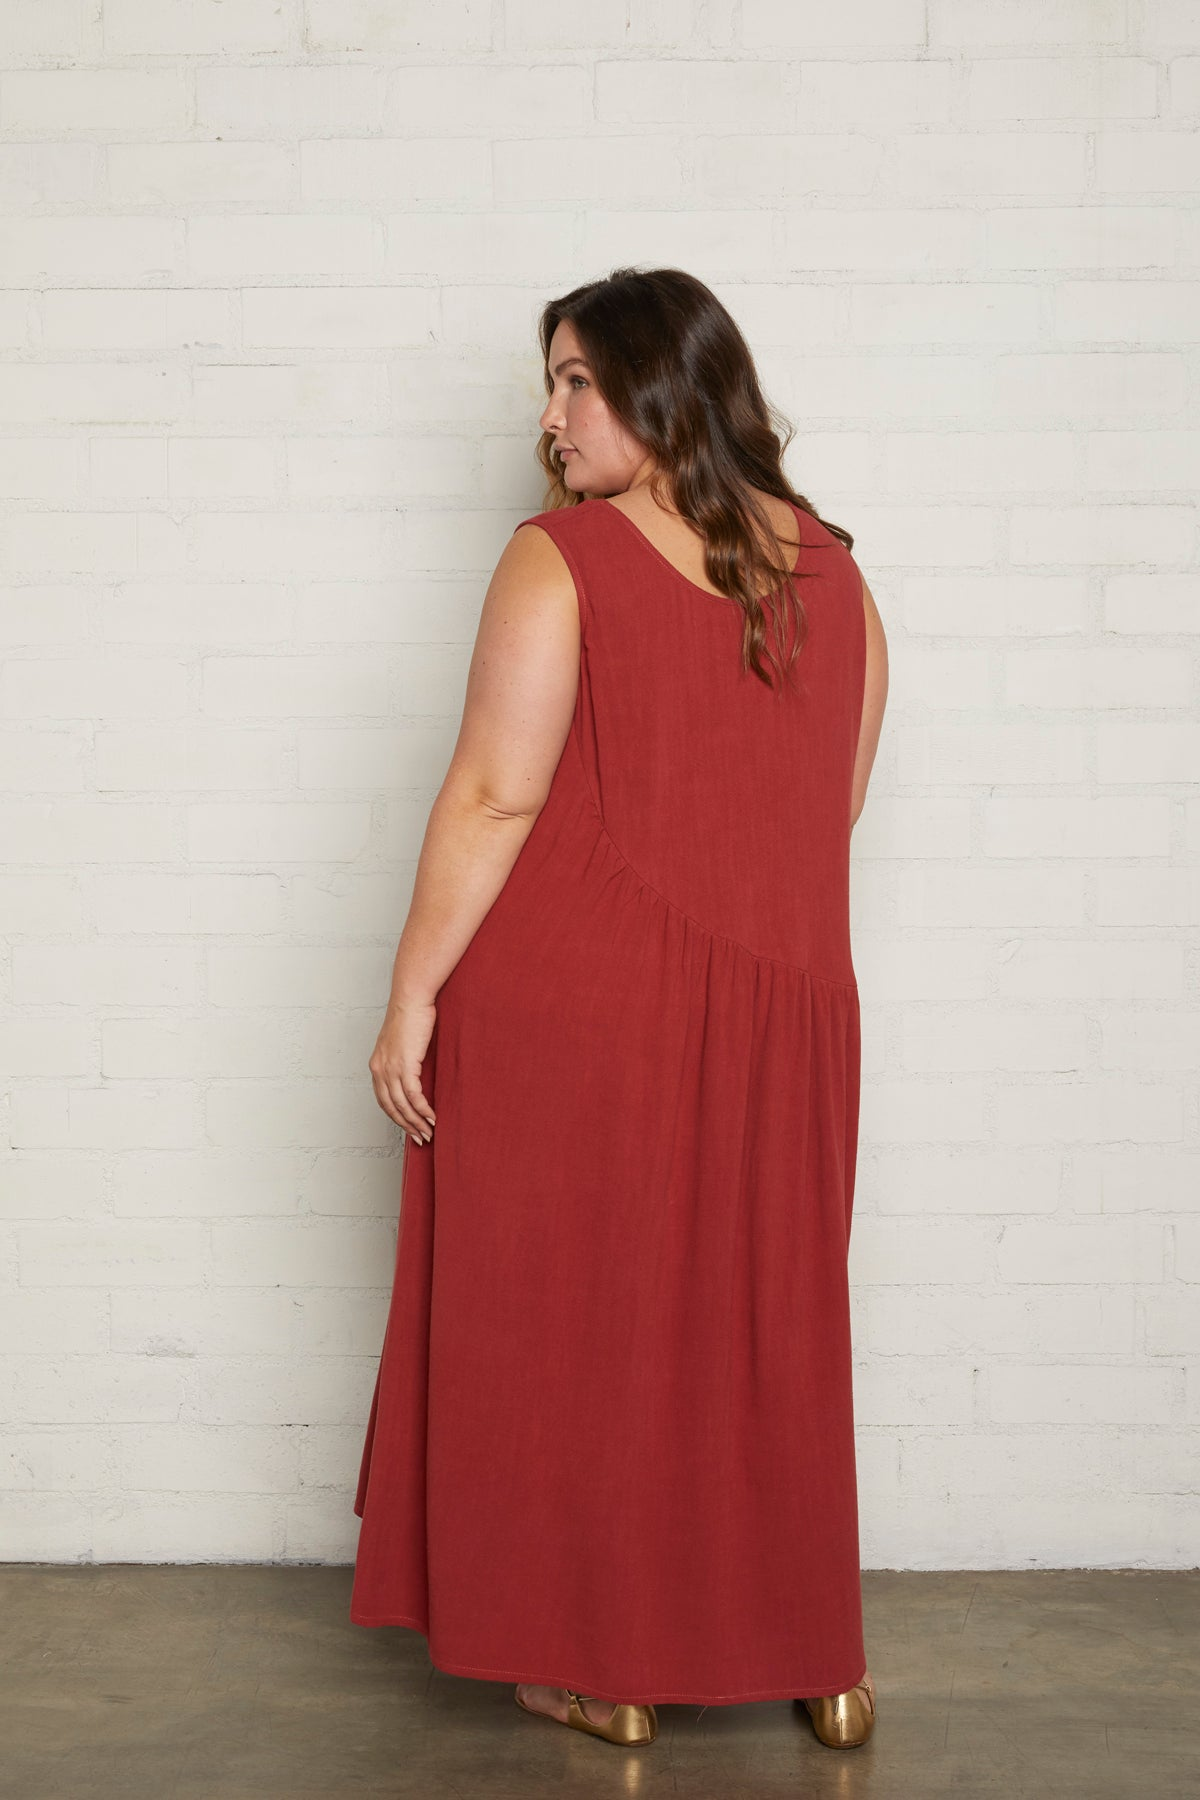 Linen Janie Dress - Sumac, Plus Size